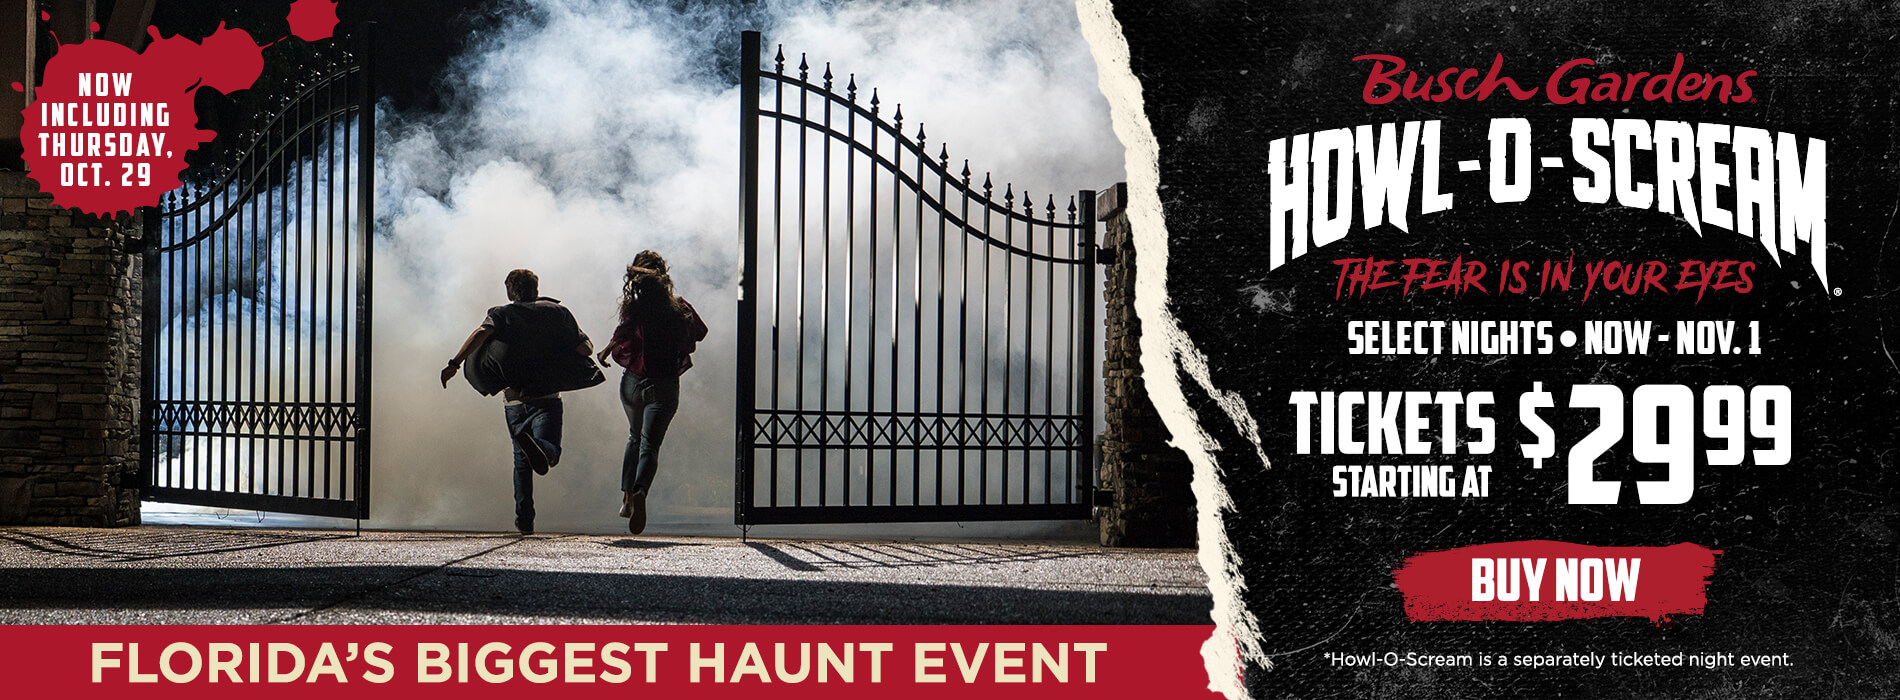 Thursday 29 added to Howl o Scream!